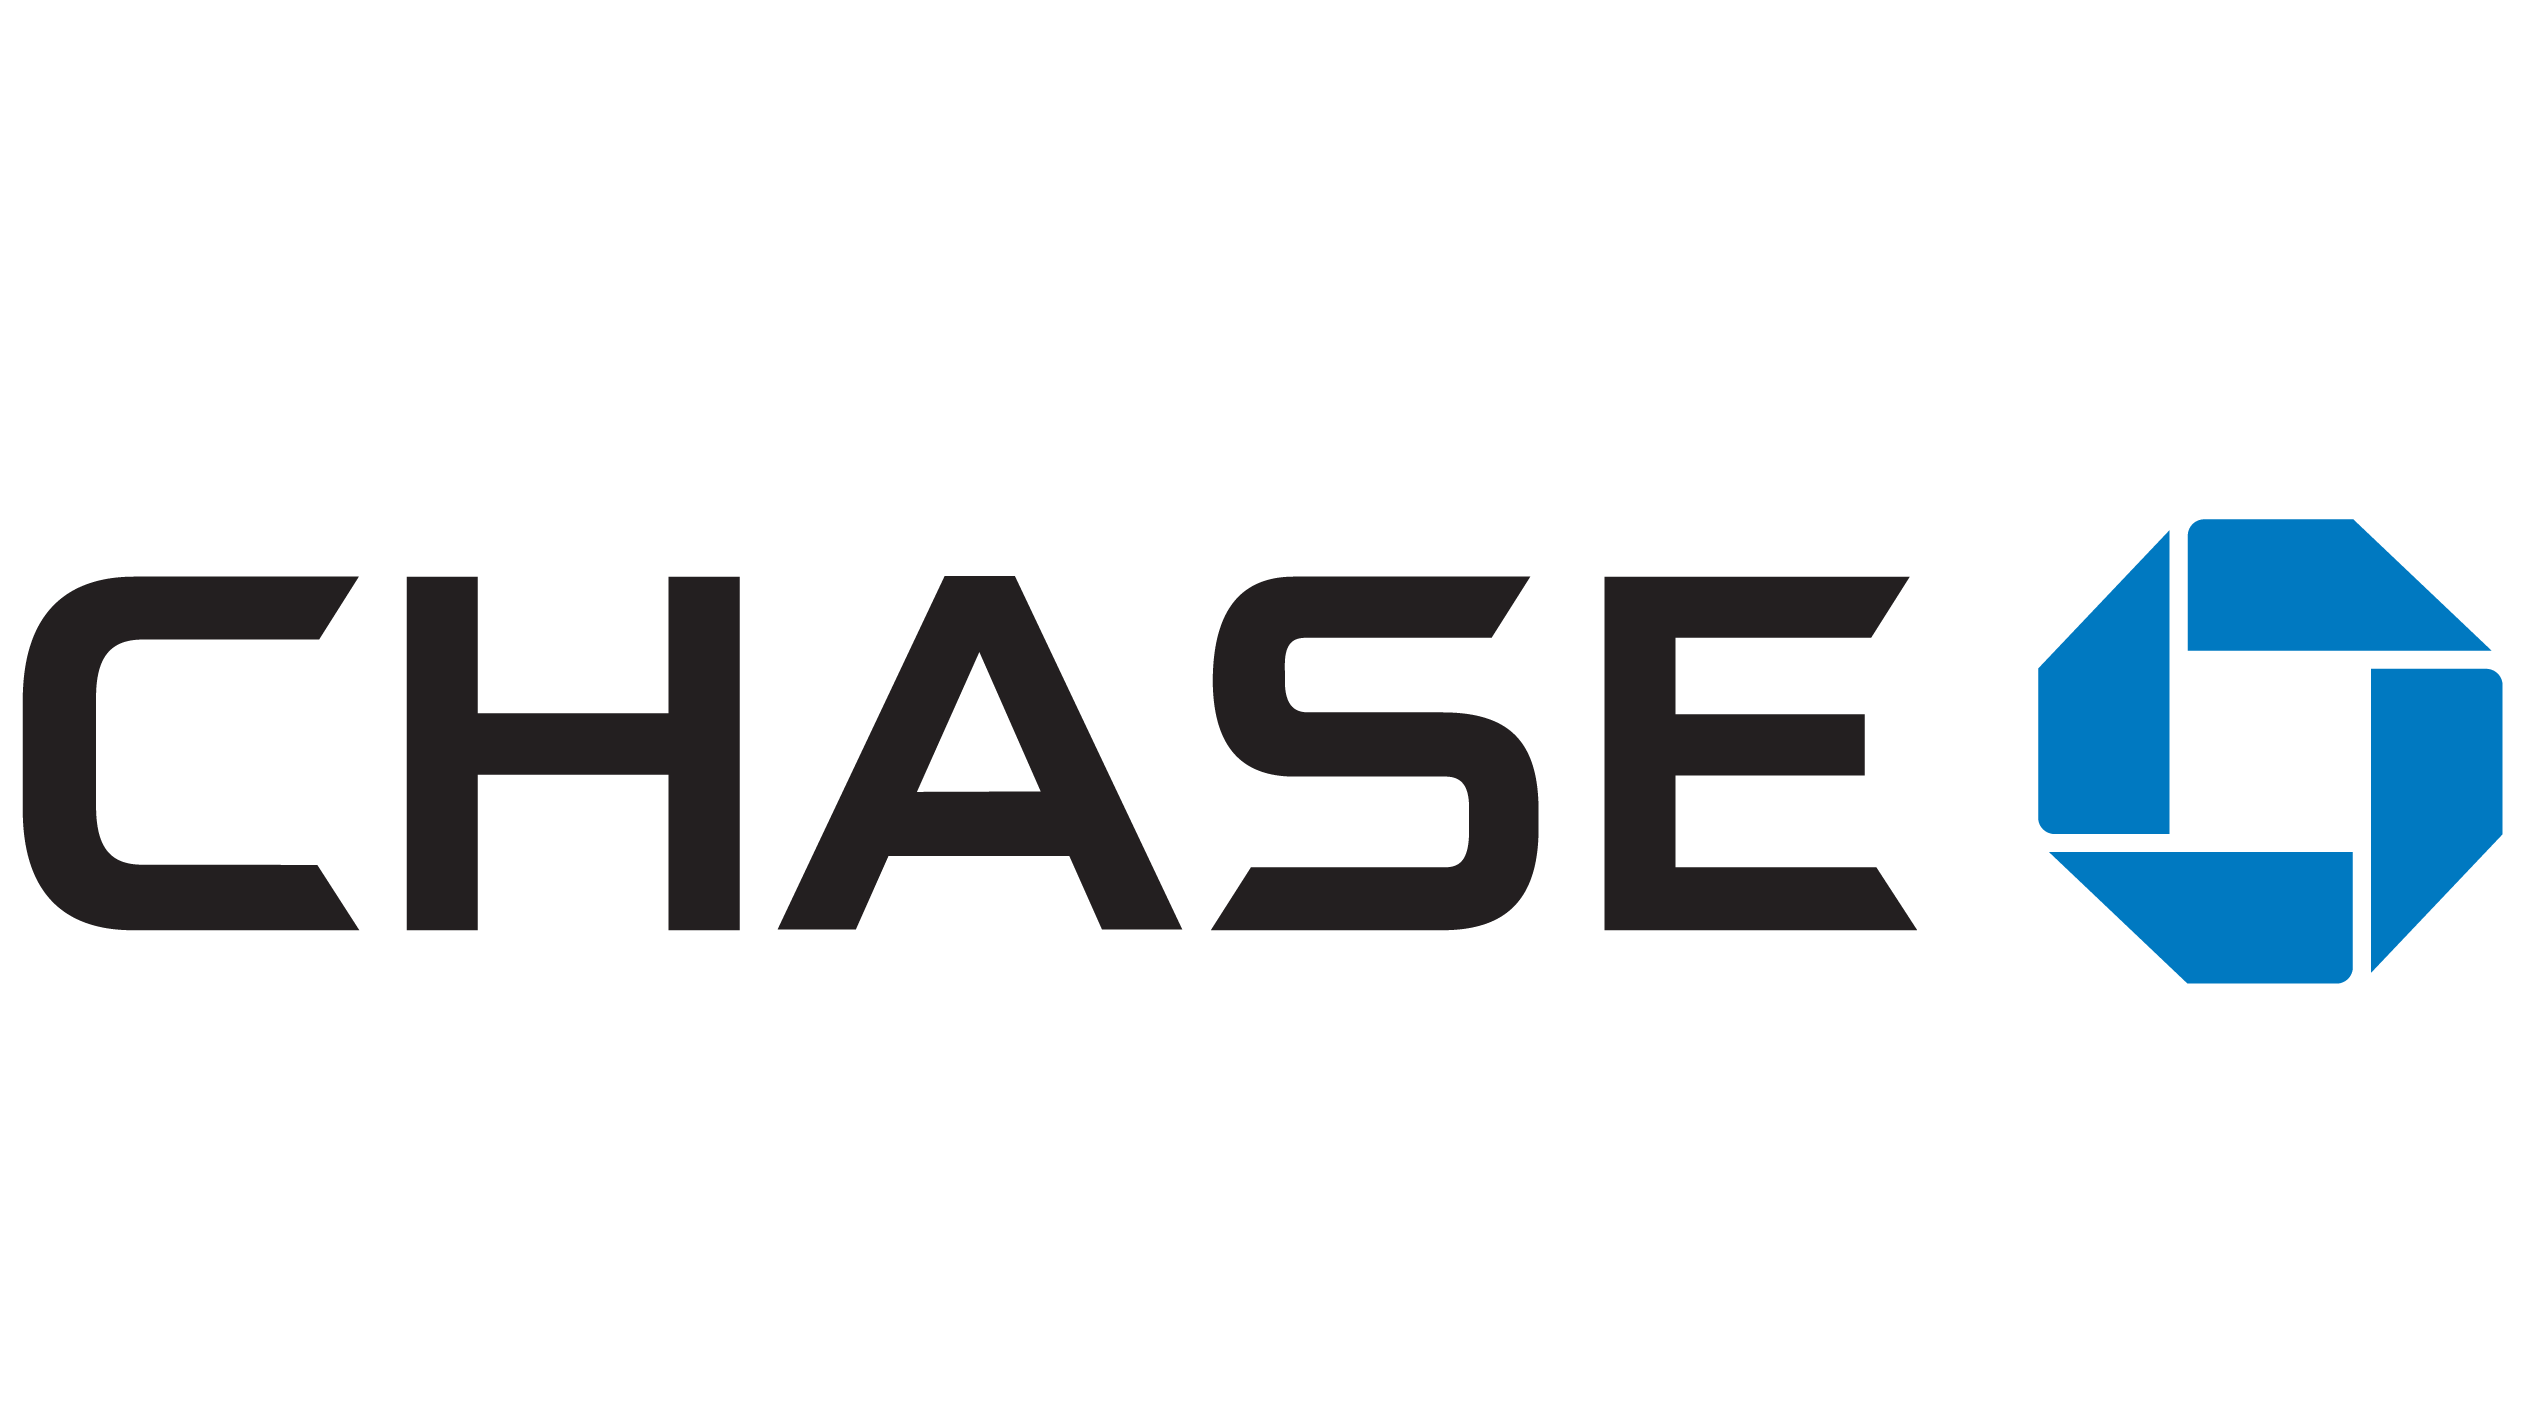 Chase Bank Png & Free Chase Bank.png Transparent Images #29511.